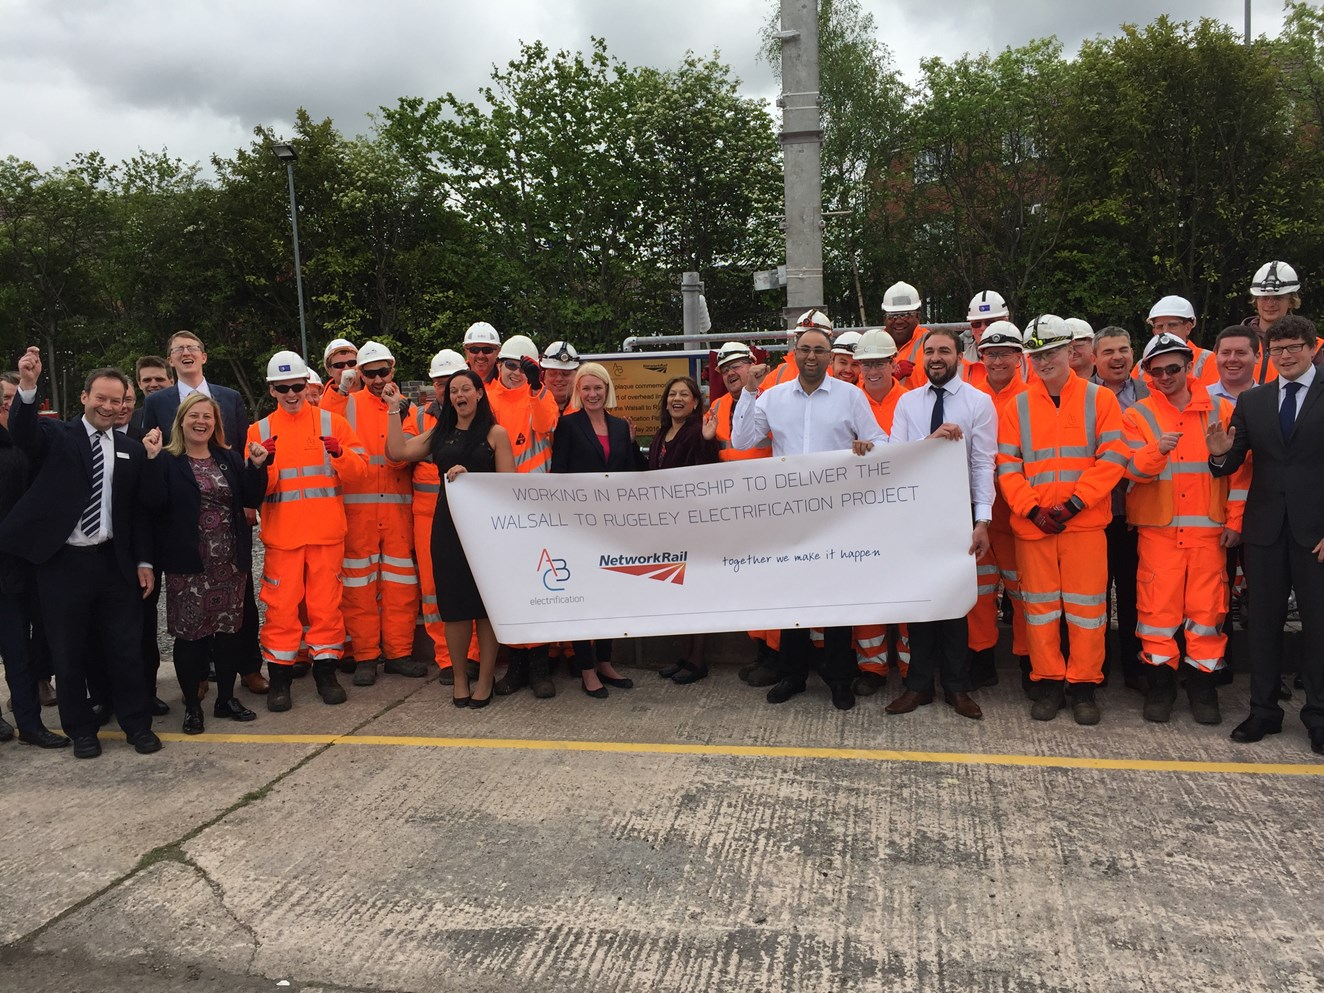 MPs see first-hand work to improve the railway between Walsall and Rugeley: Walsall to Rugeley electrification